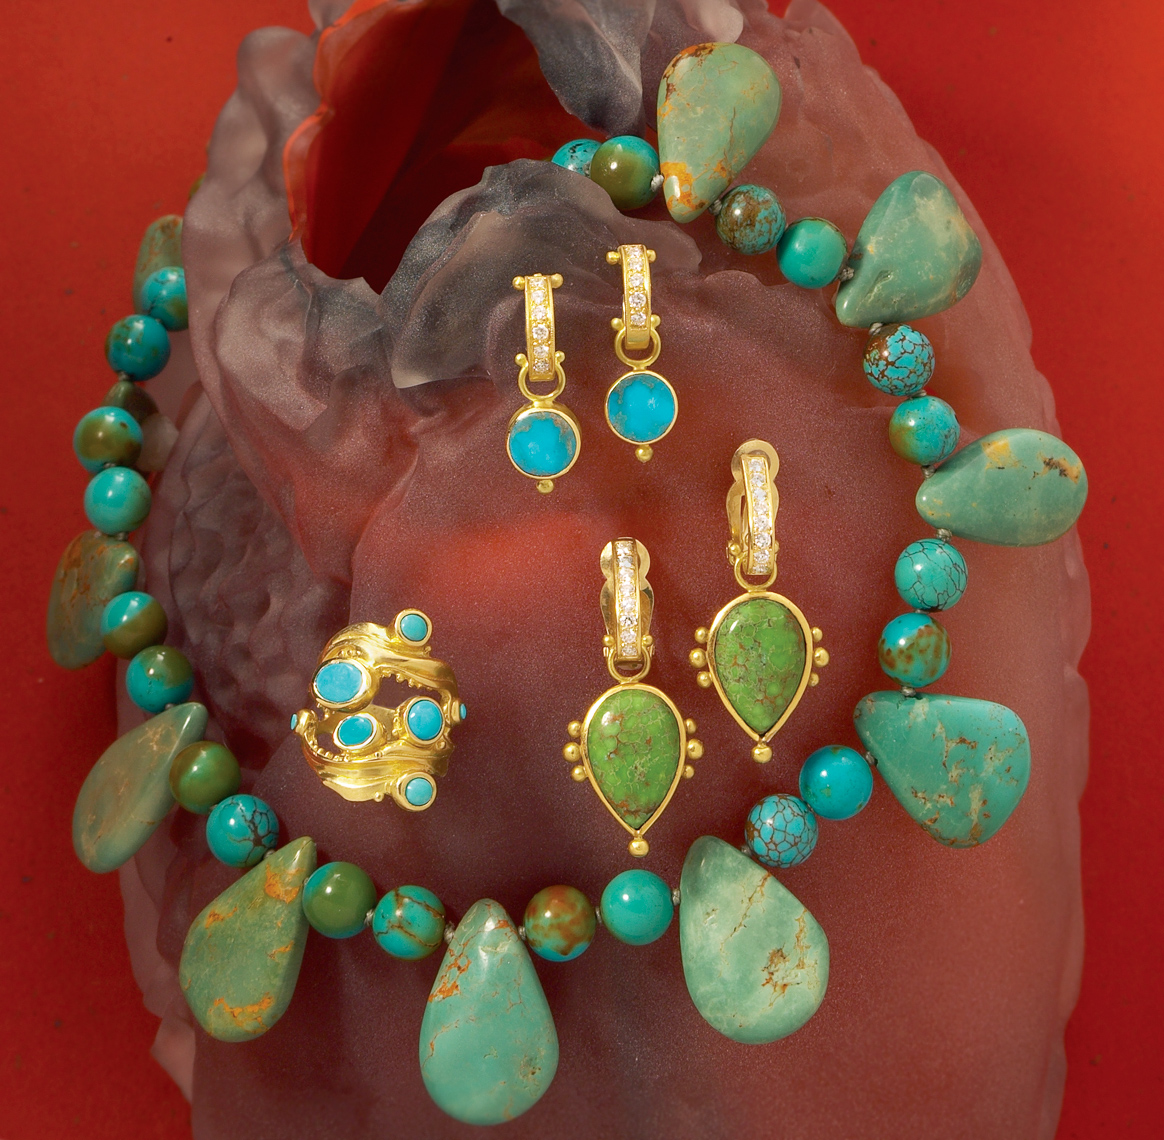 Goldeneye Jewelry - Santa Fe